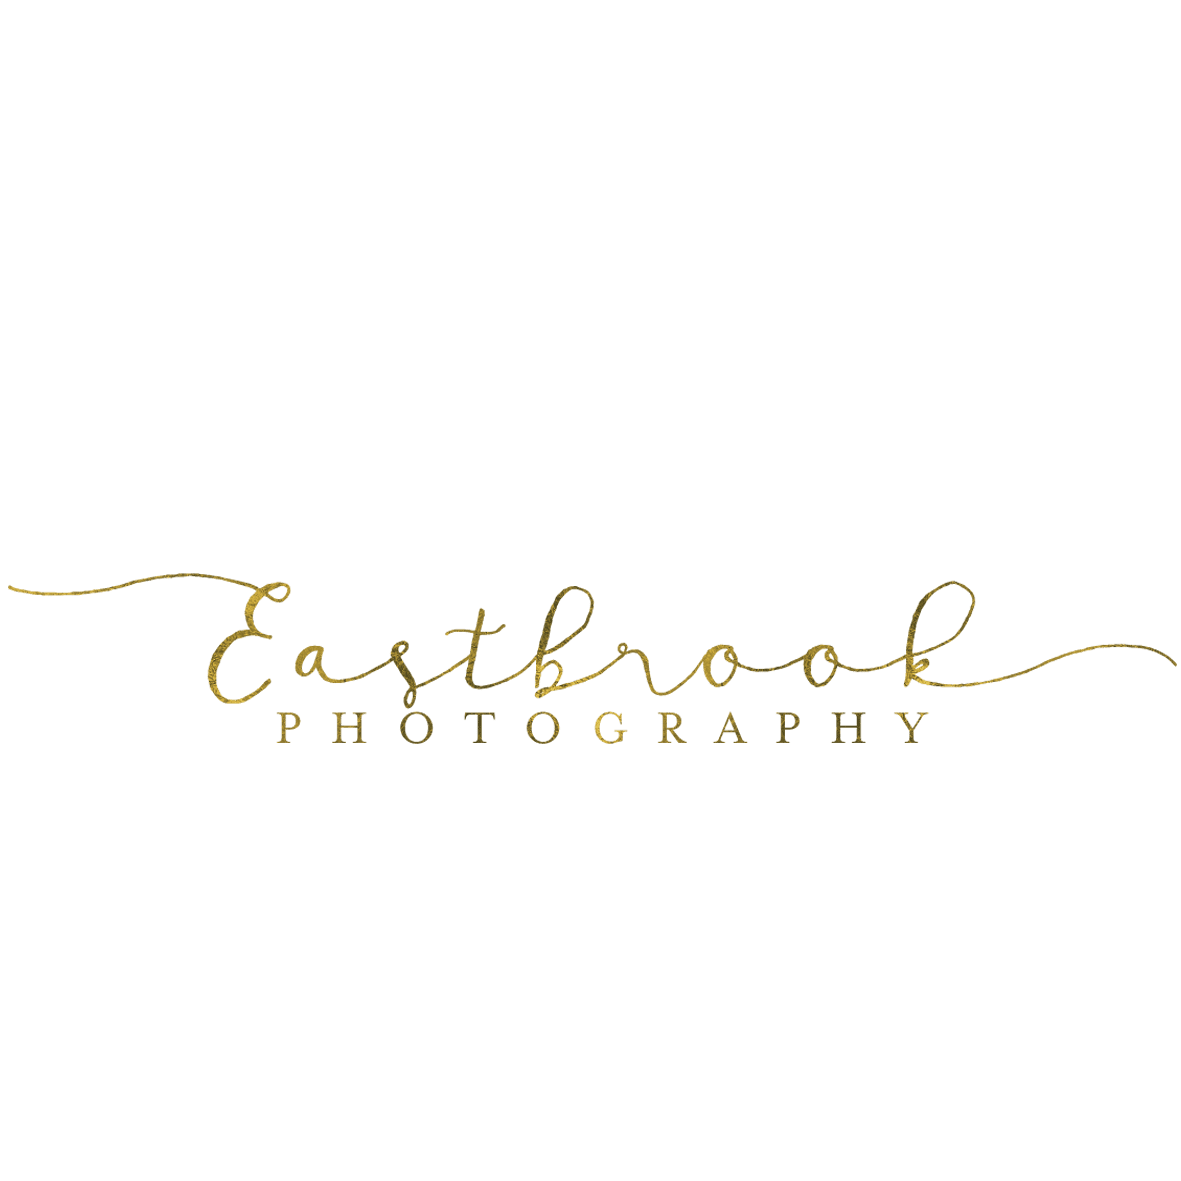 Easprook Photography Logo